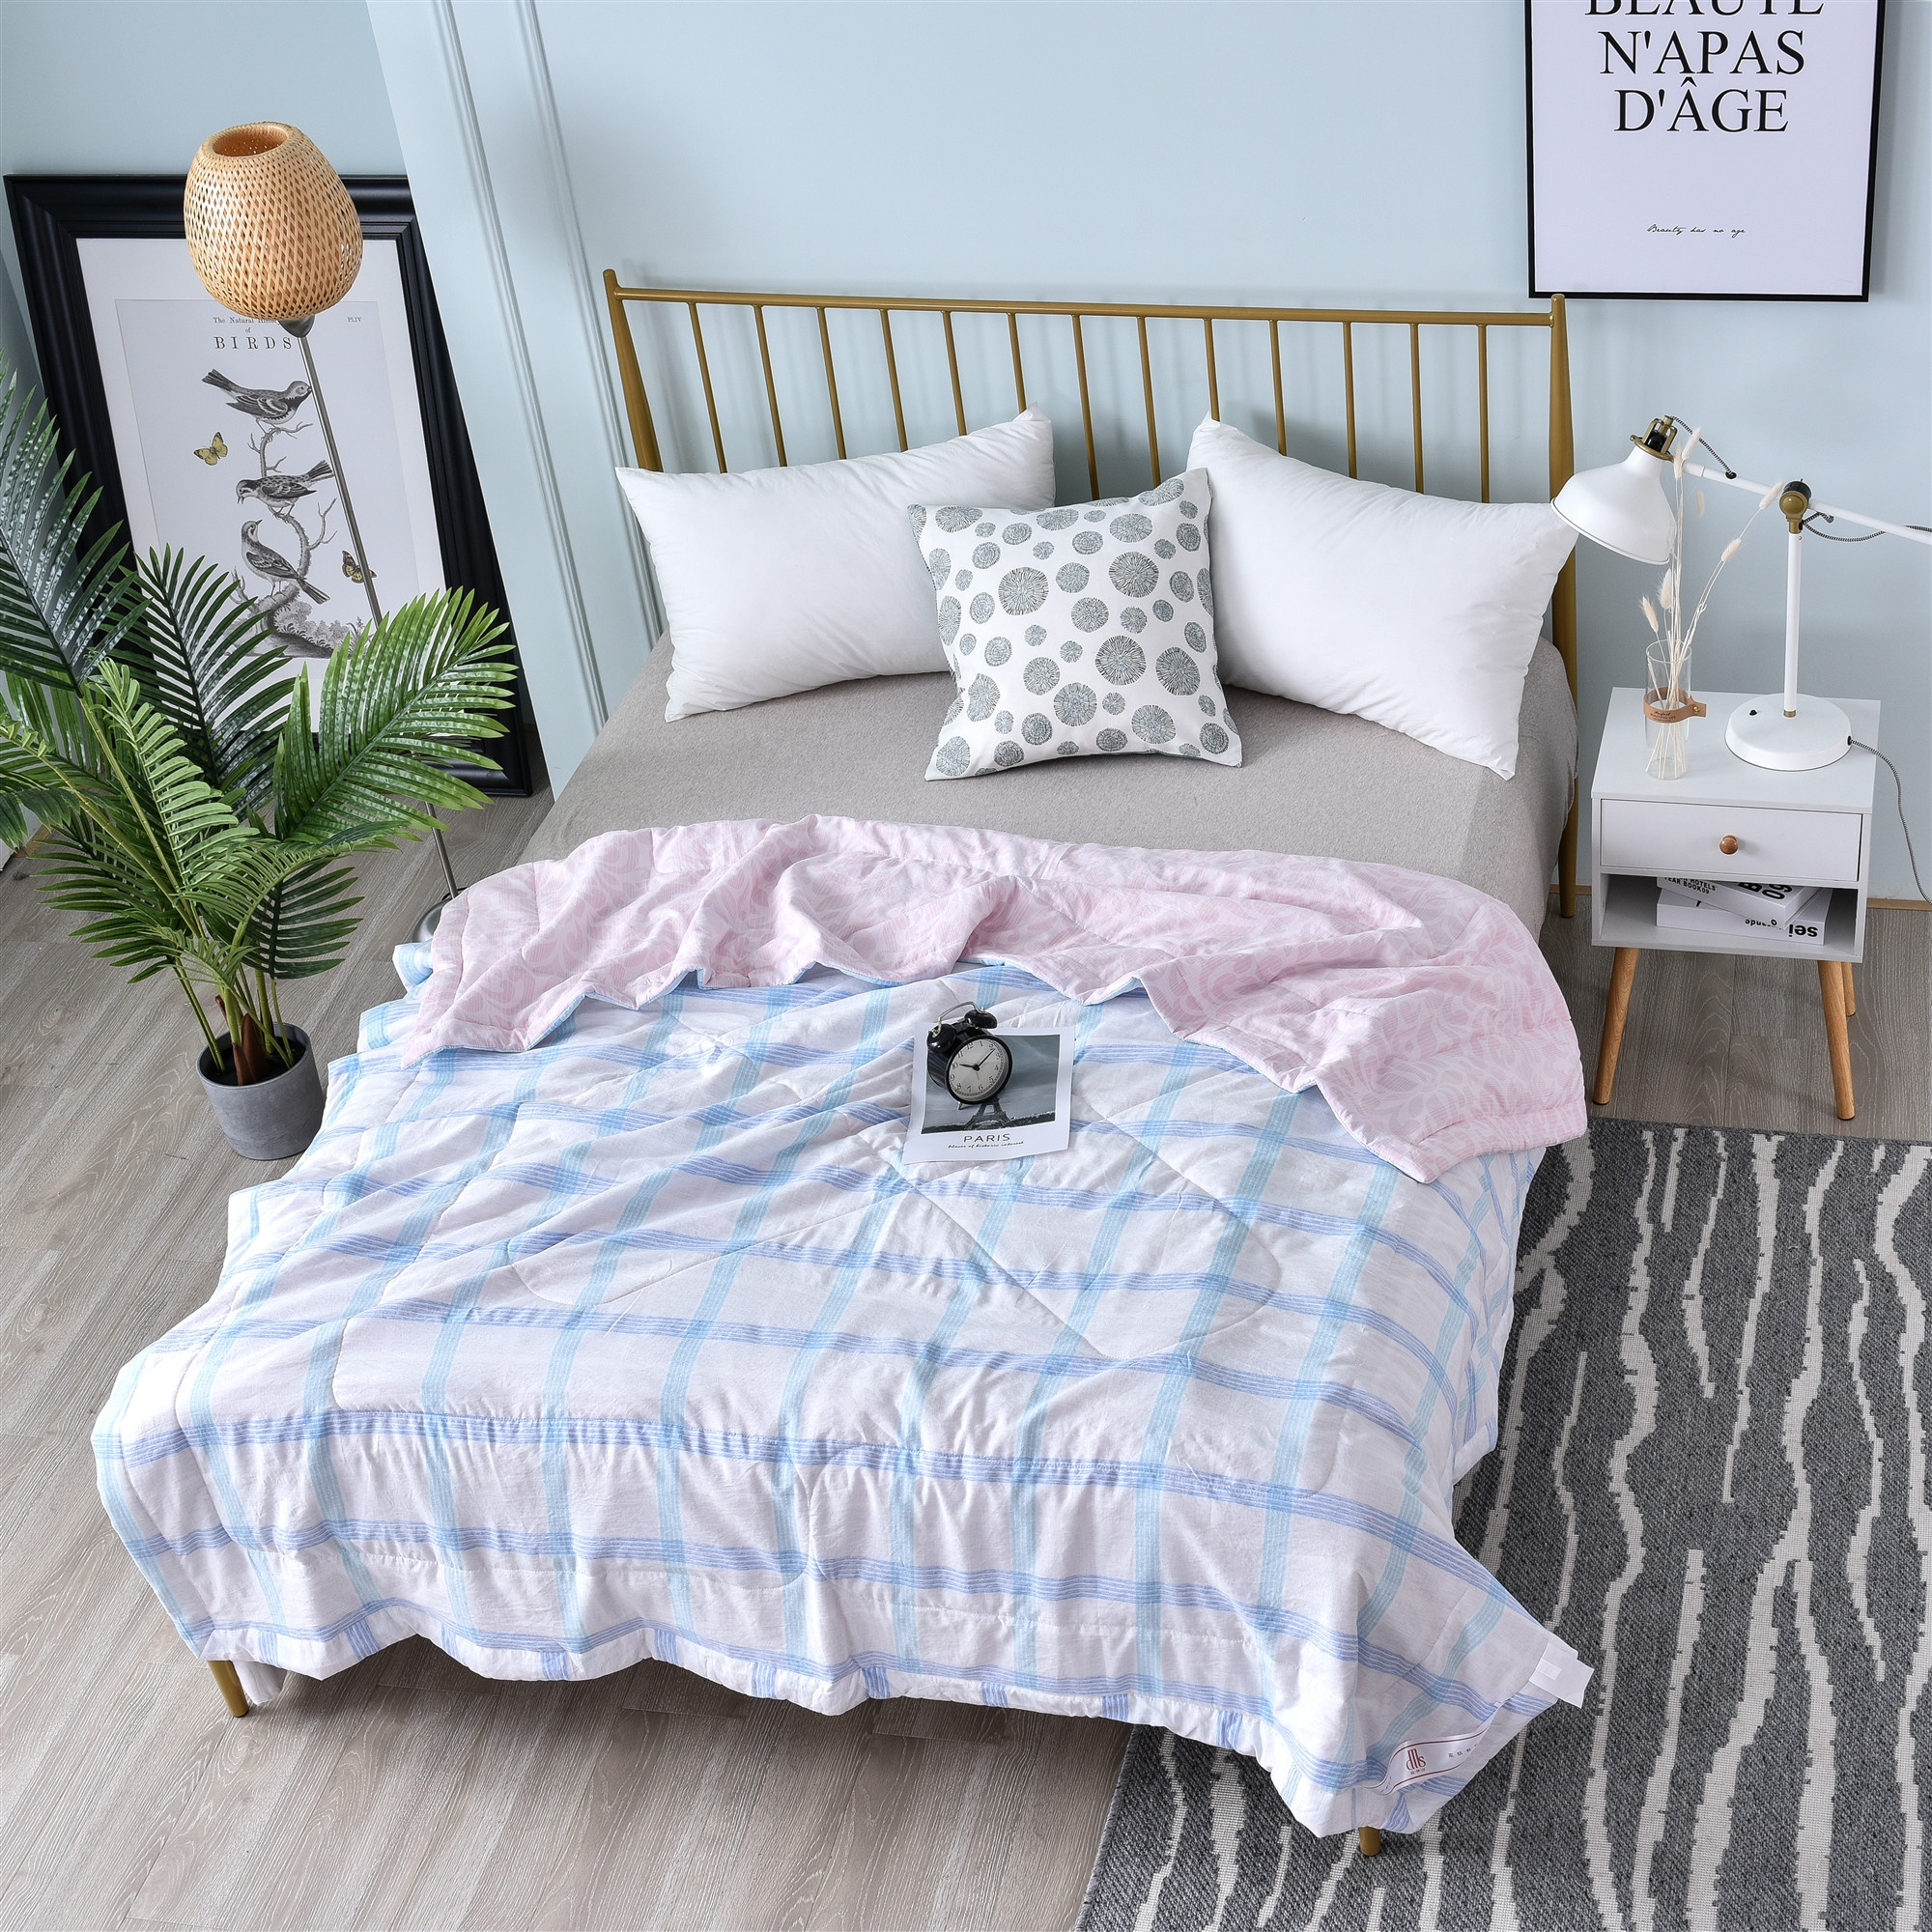 Wholesale Luxury Home Textile Comforter <strong>Set</strong> Design <strong>Bed</strong> Sheet <strong>Set</strong> <strong>King</strong> <strong>Size</strong> 100% Polyester Fiber Summer Quilt